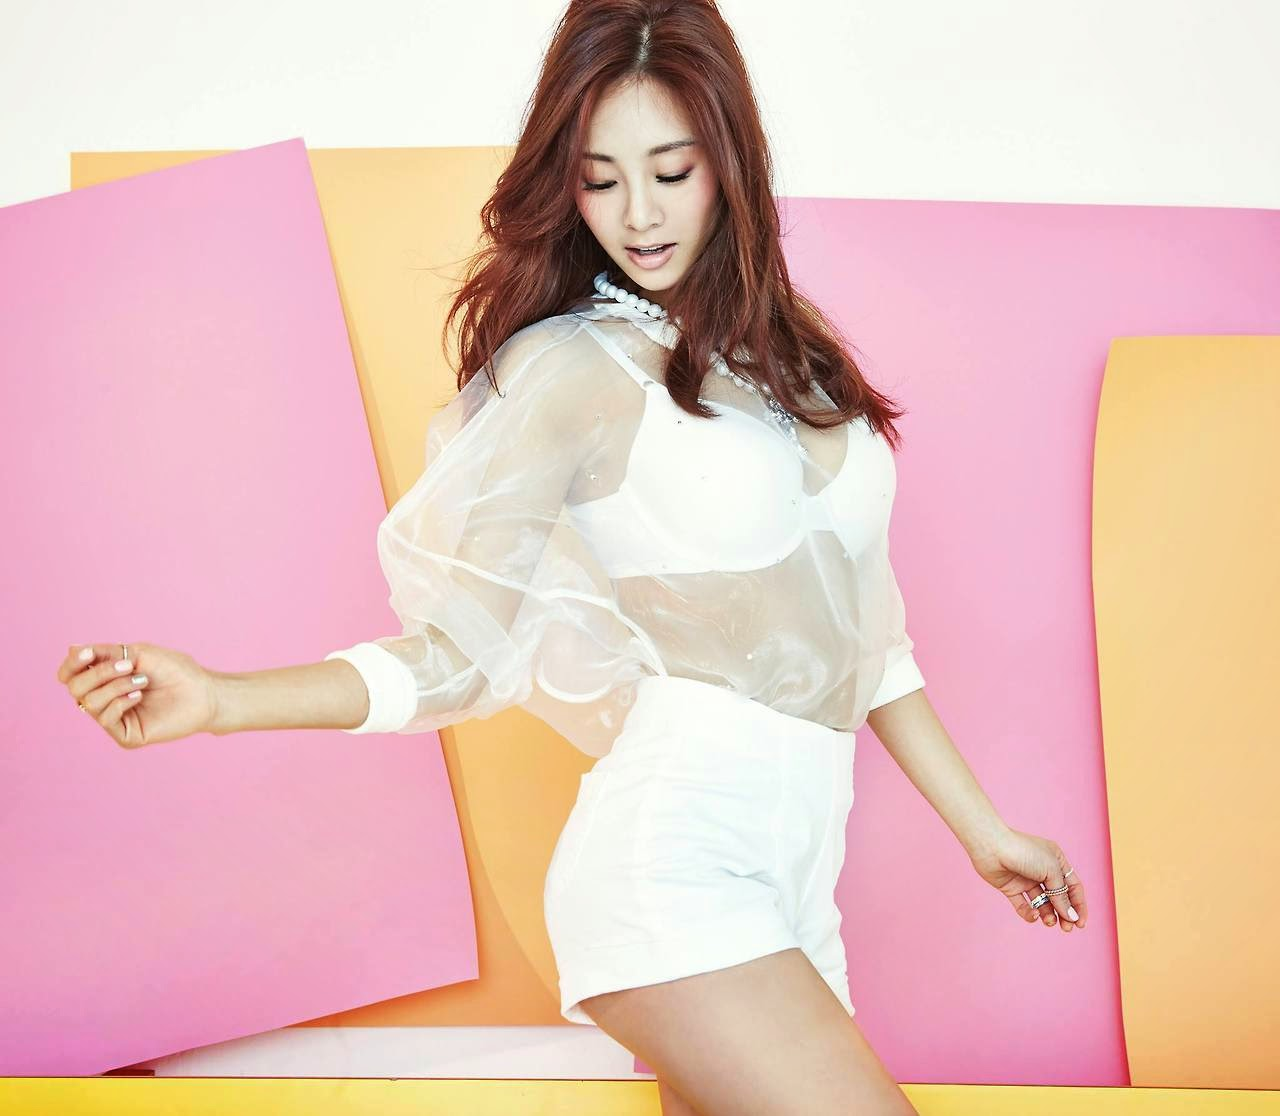 G.NA Pretty Lingerie Concept Photos